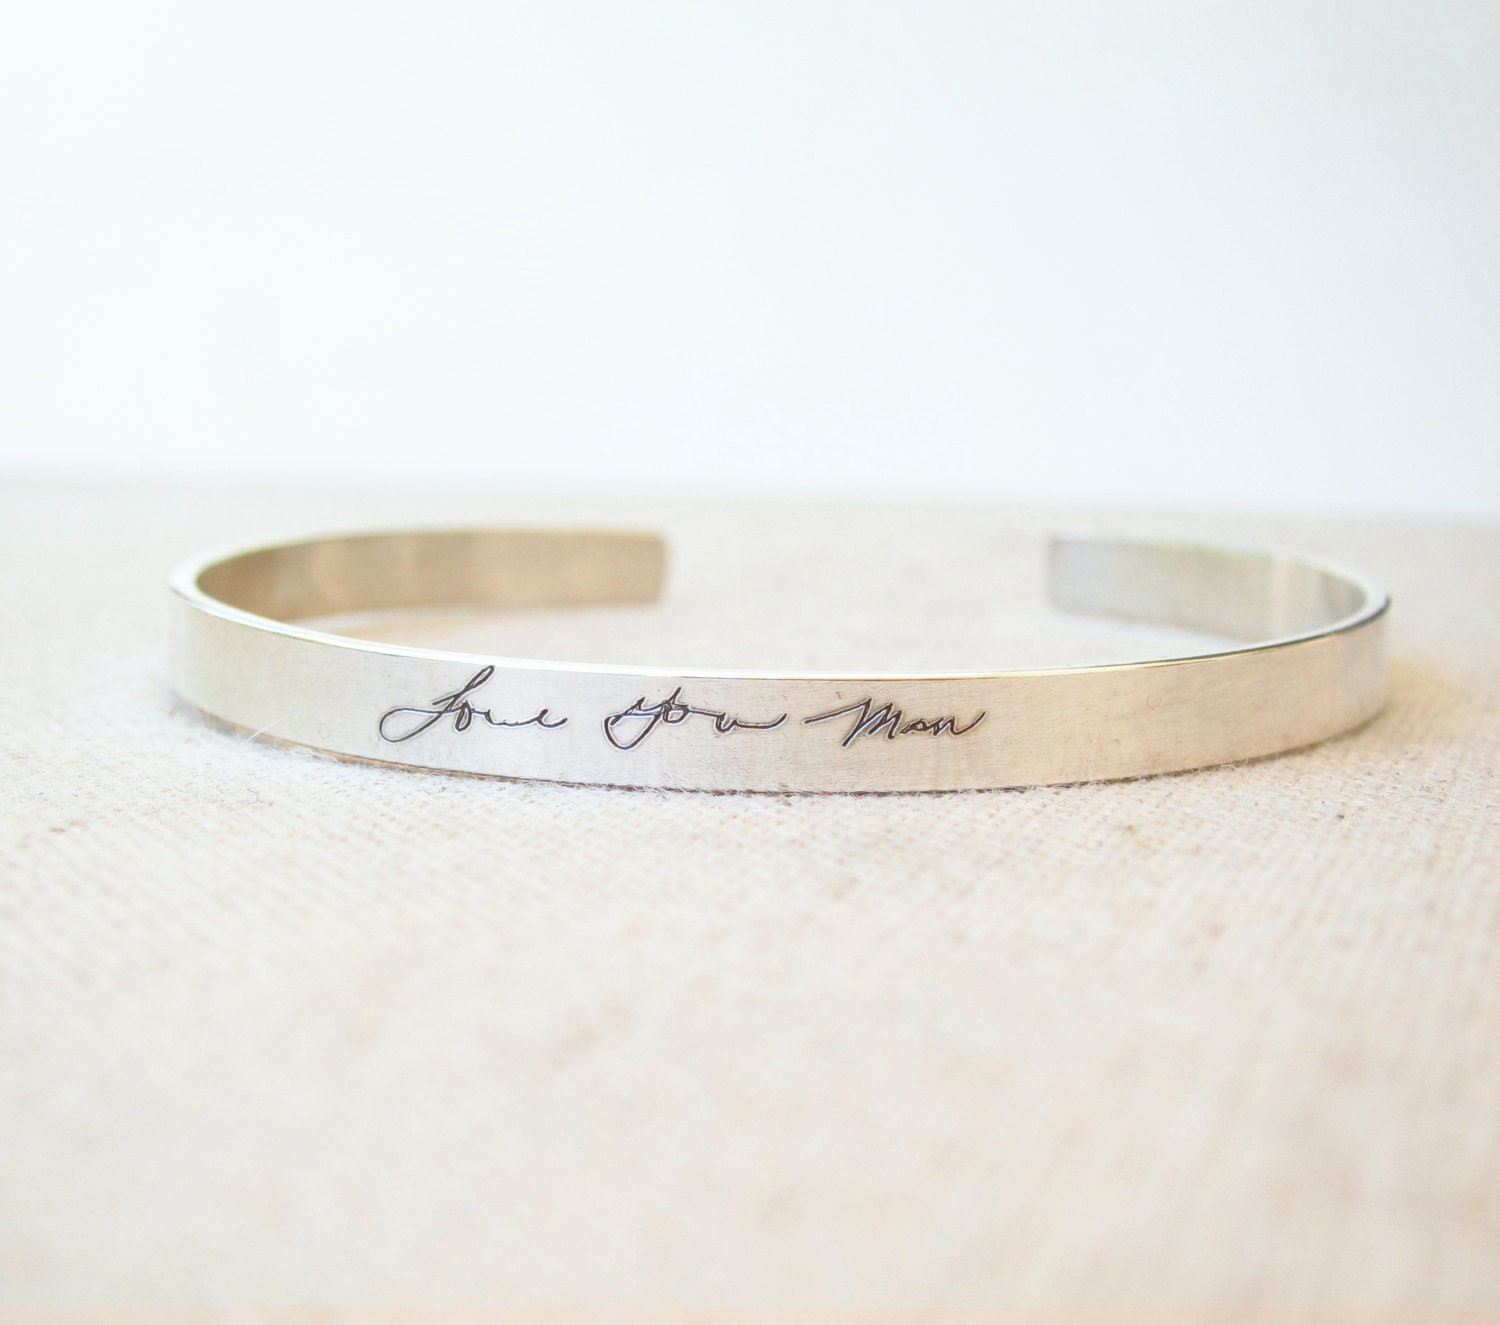 personalized cuff thin personalized silver cuff bracelet. Black Bedroom Furniture Sets. Home Design Ideas